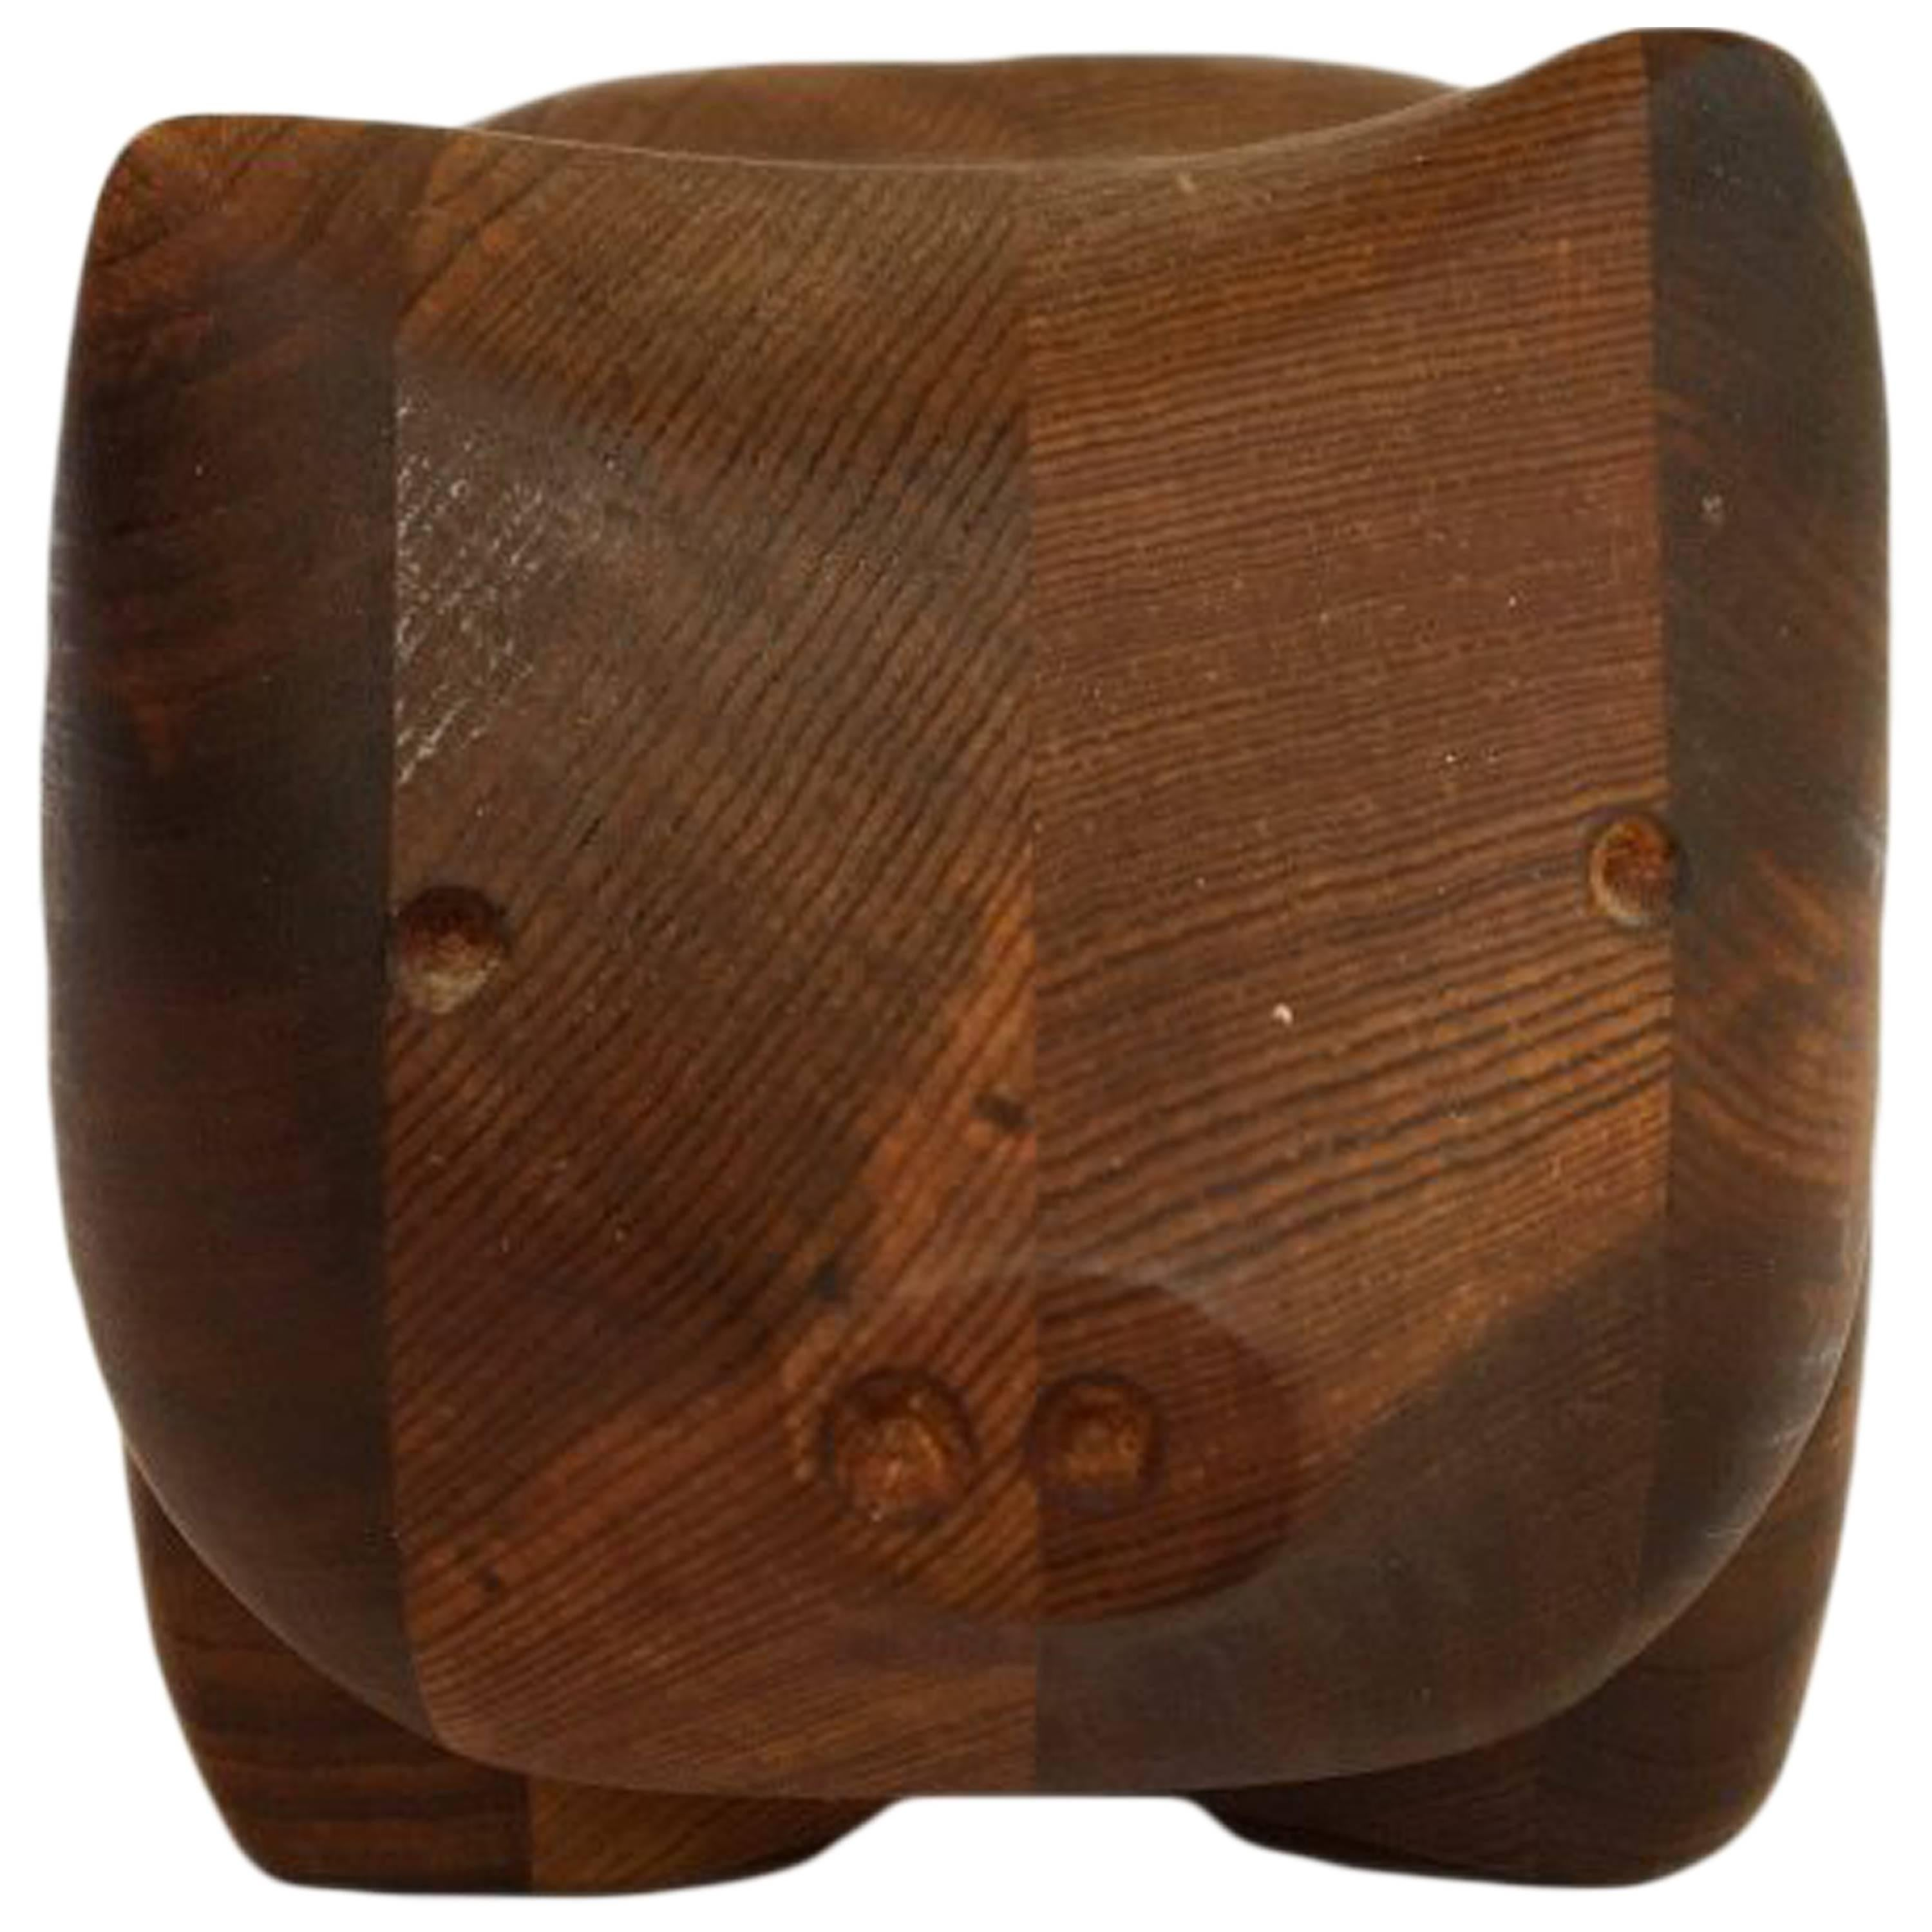 Small Teak Jewelry Box By Studio Artist Deborah Bump